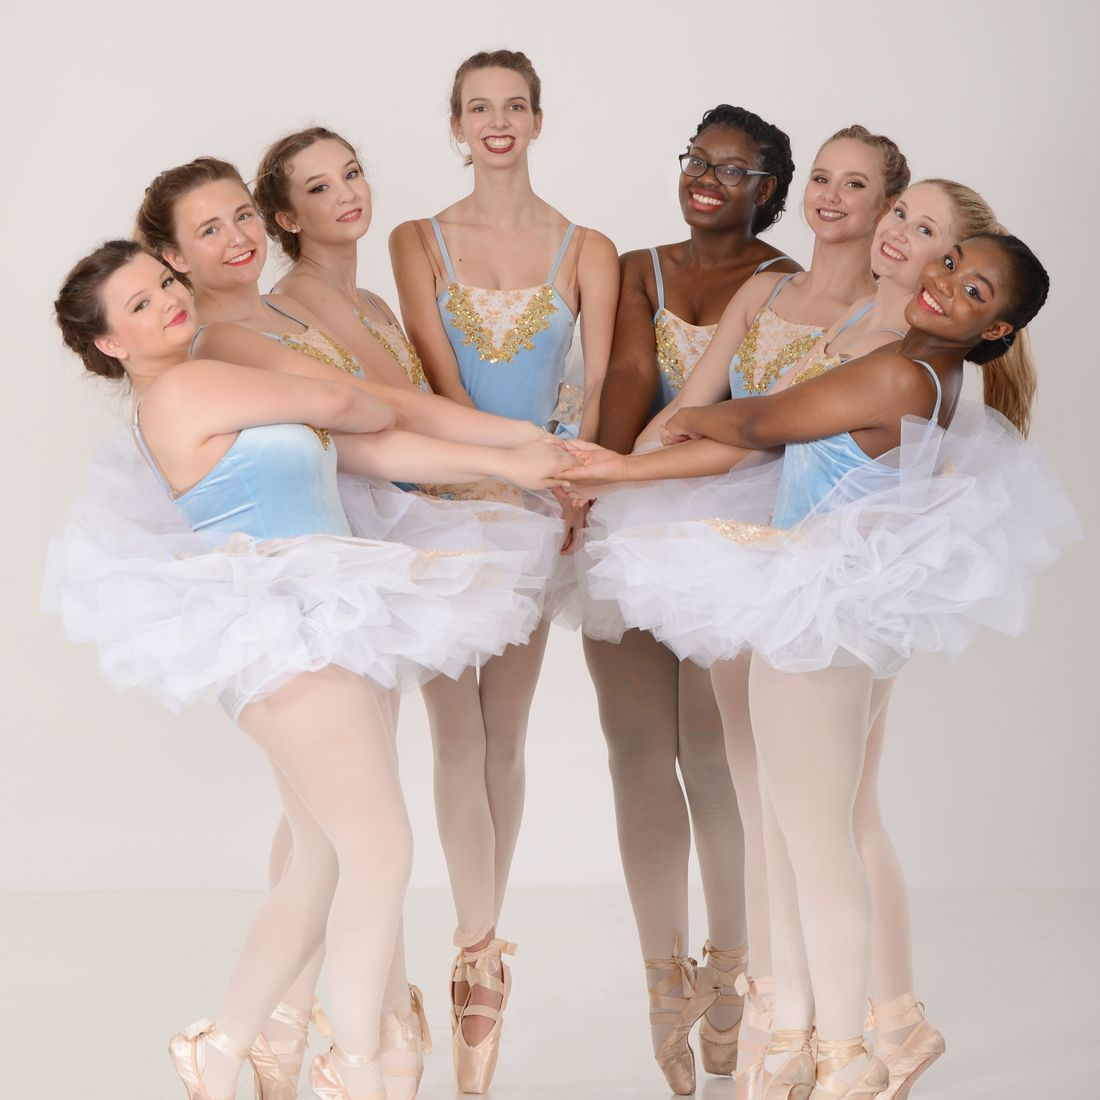 New Bern ballet foundation and skills classes